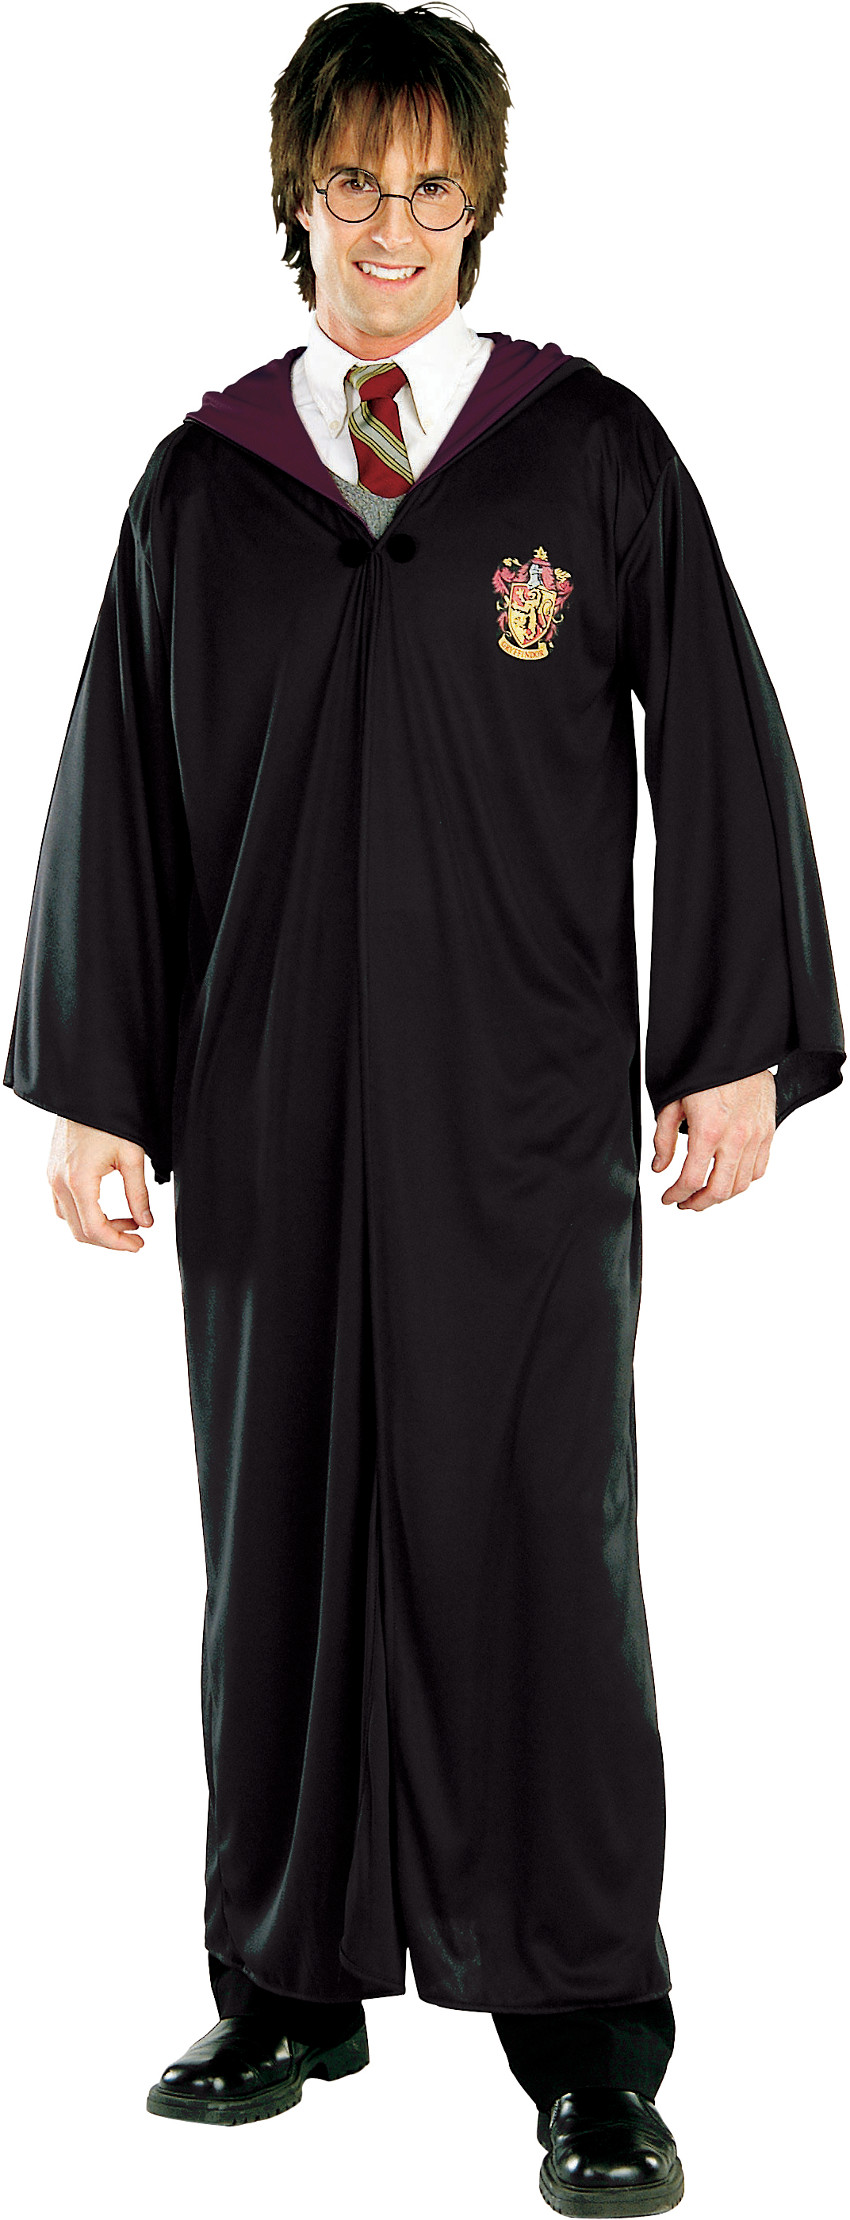 Adult Harry Potter or Hermione Granger Costume Robe New  sc 1 st  Walmart & Adult Harry Potter or Hermione Granger Costume Robe New - Walmart.com